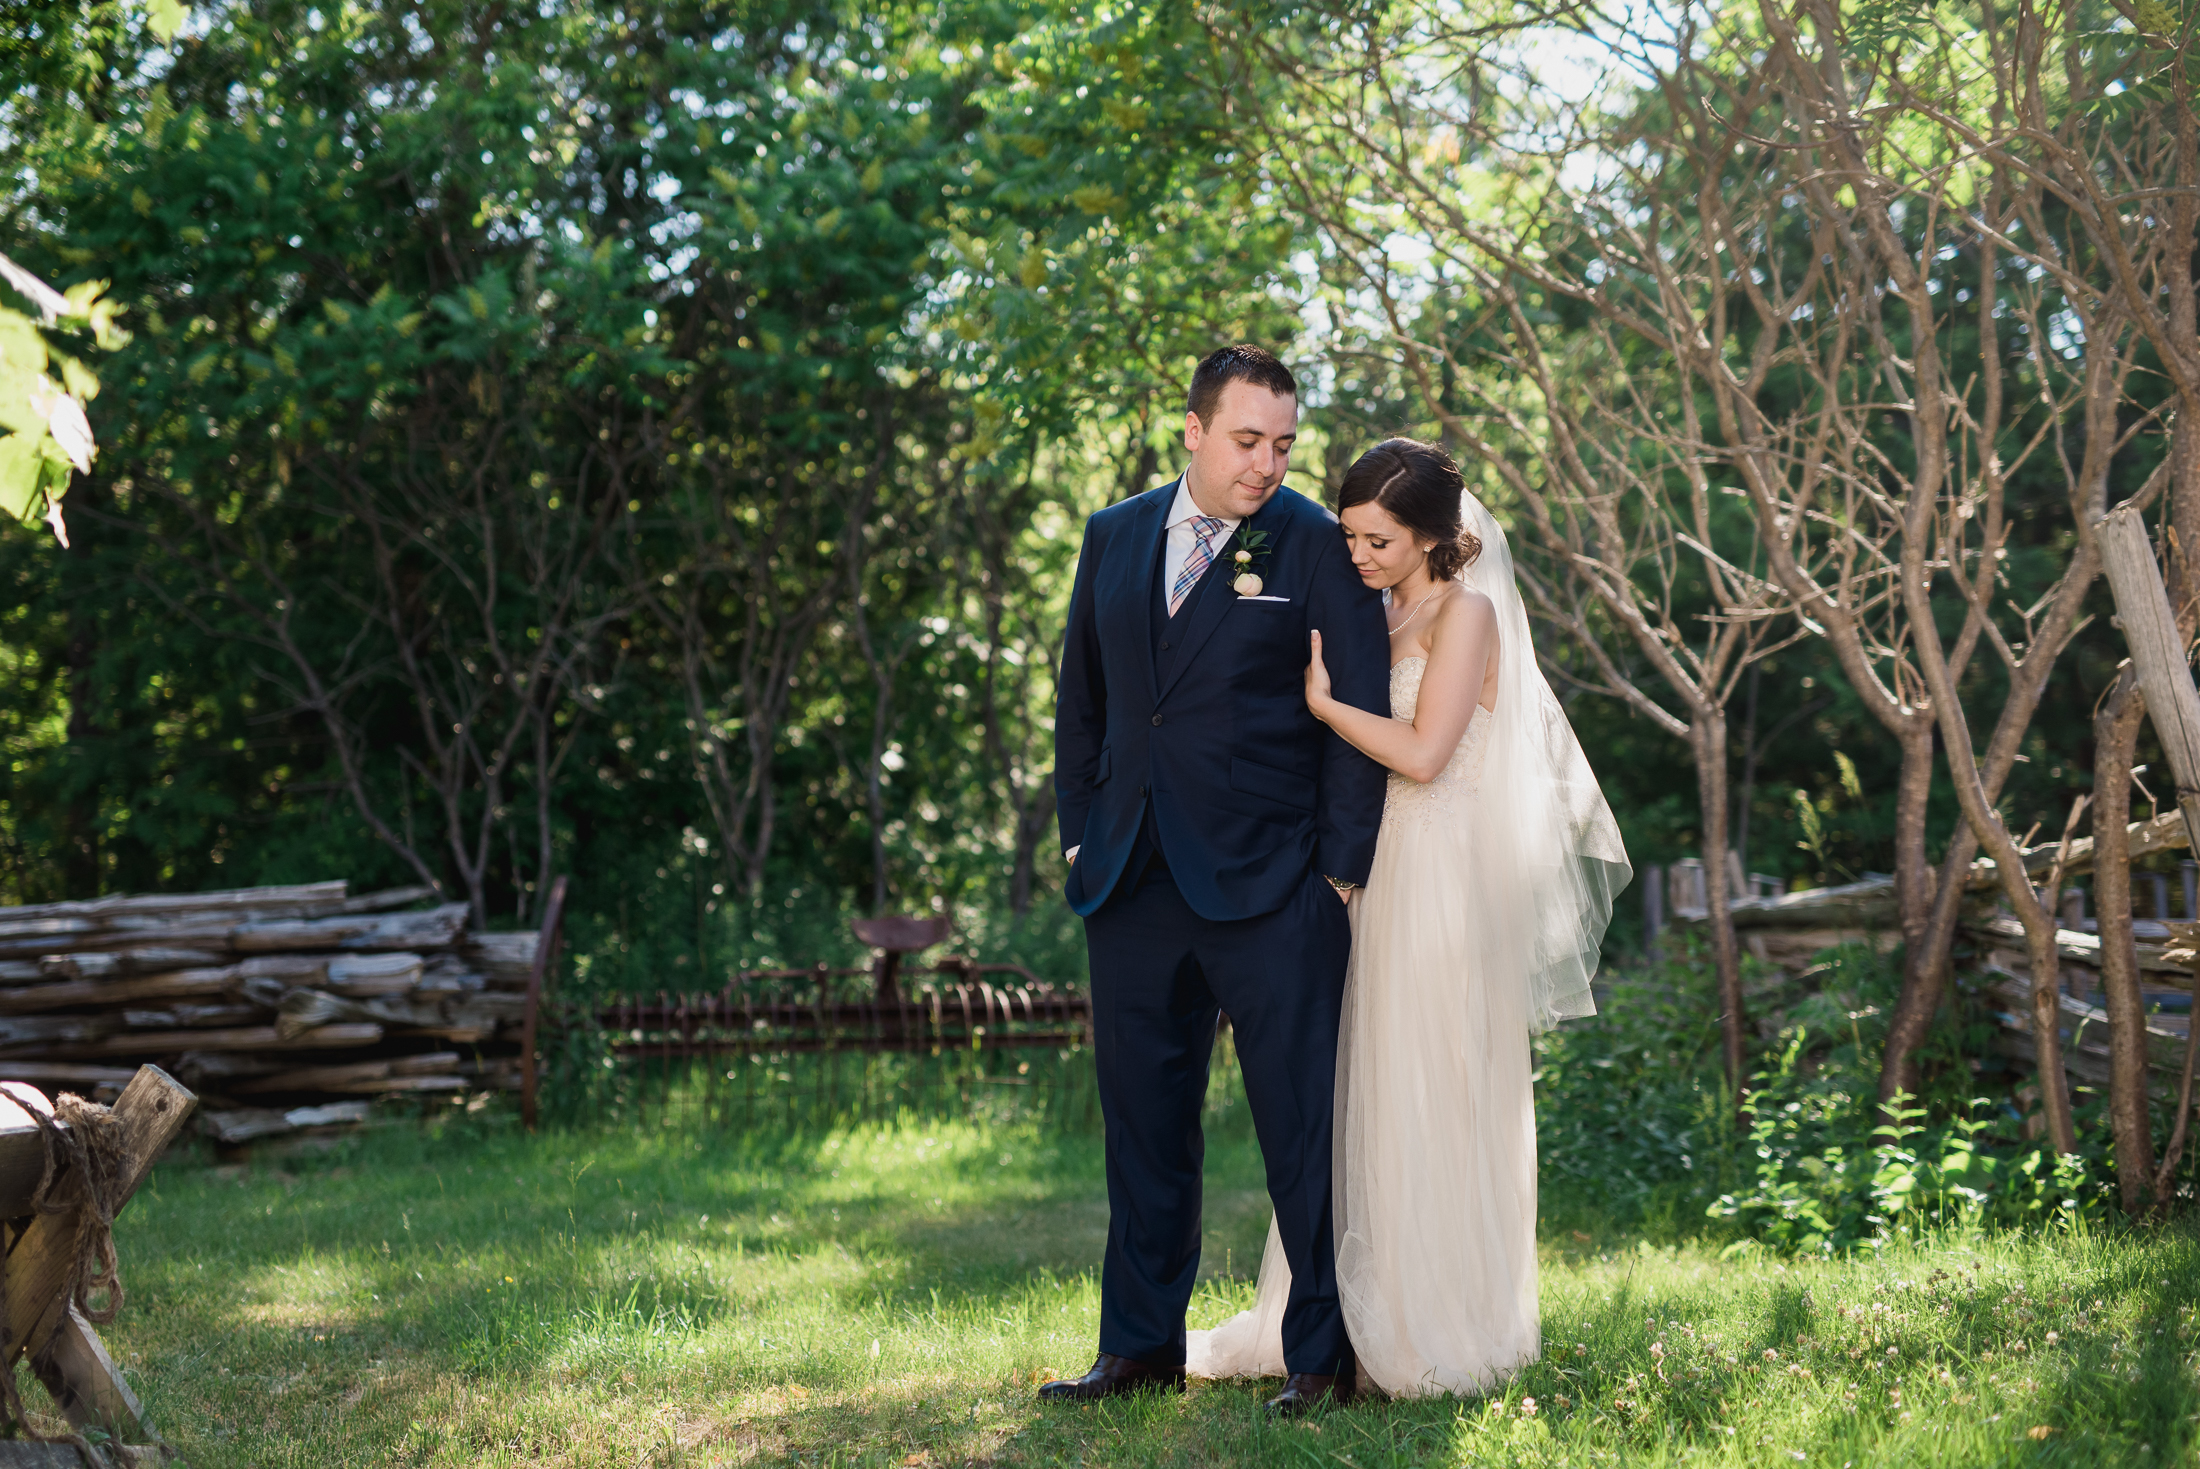 pickering_lakehouse_wedding_durham_region155